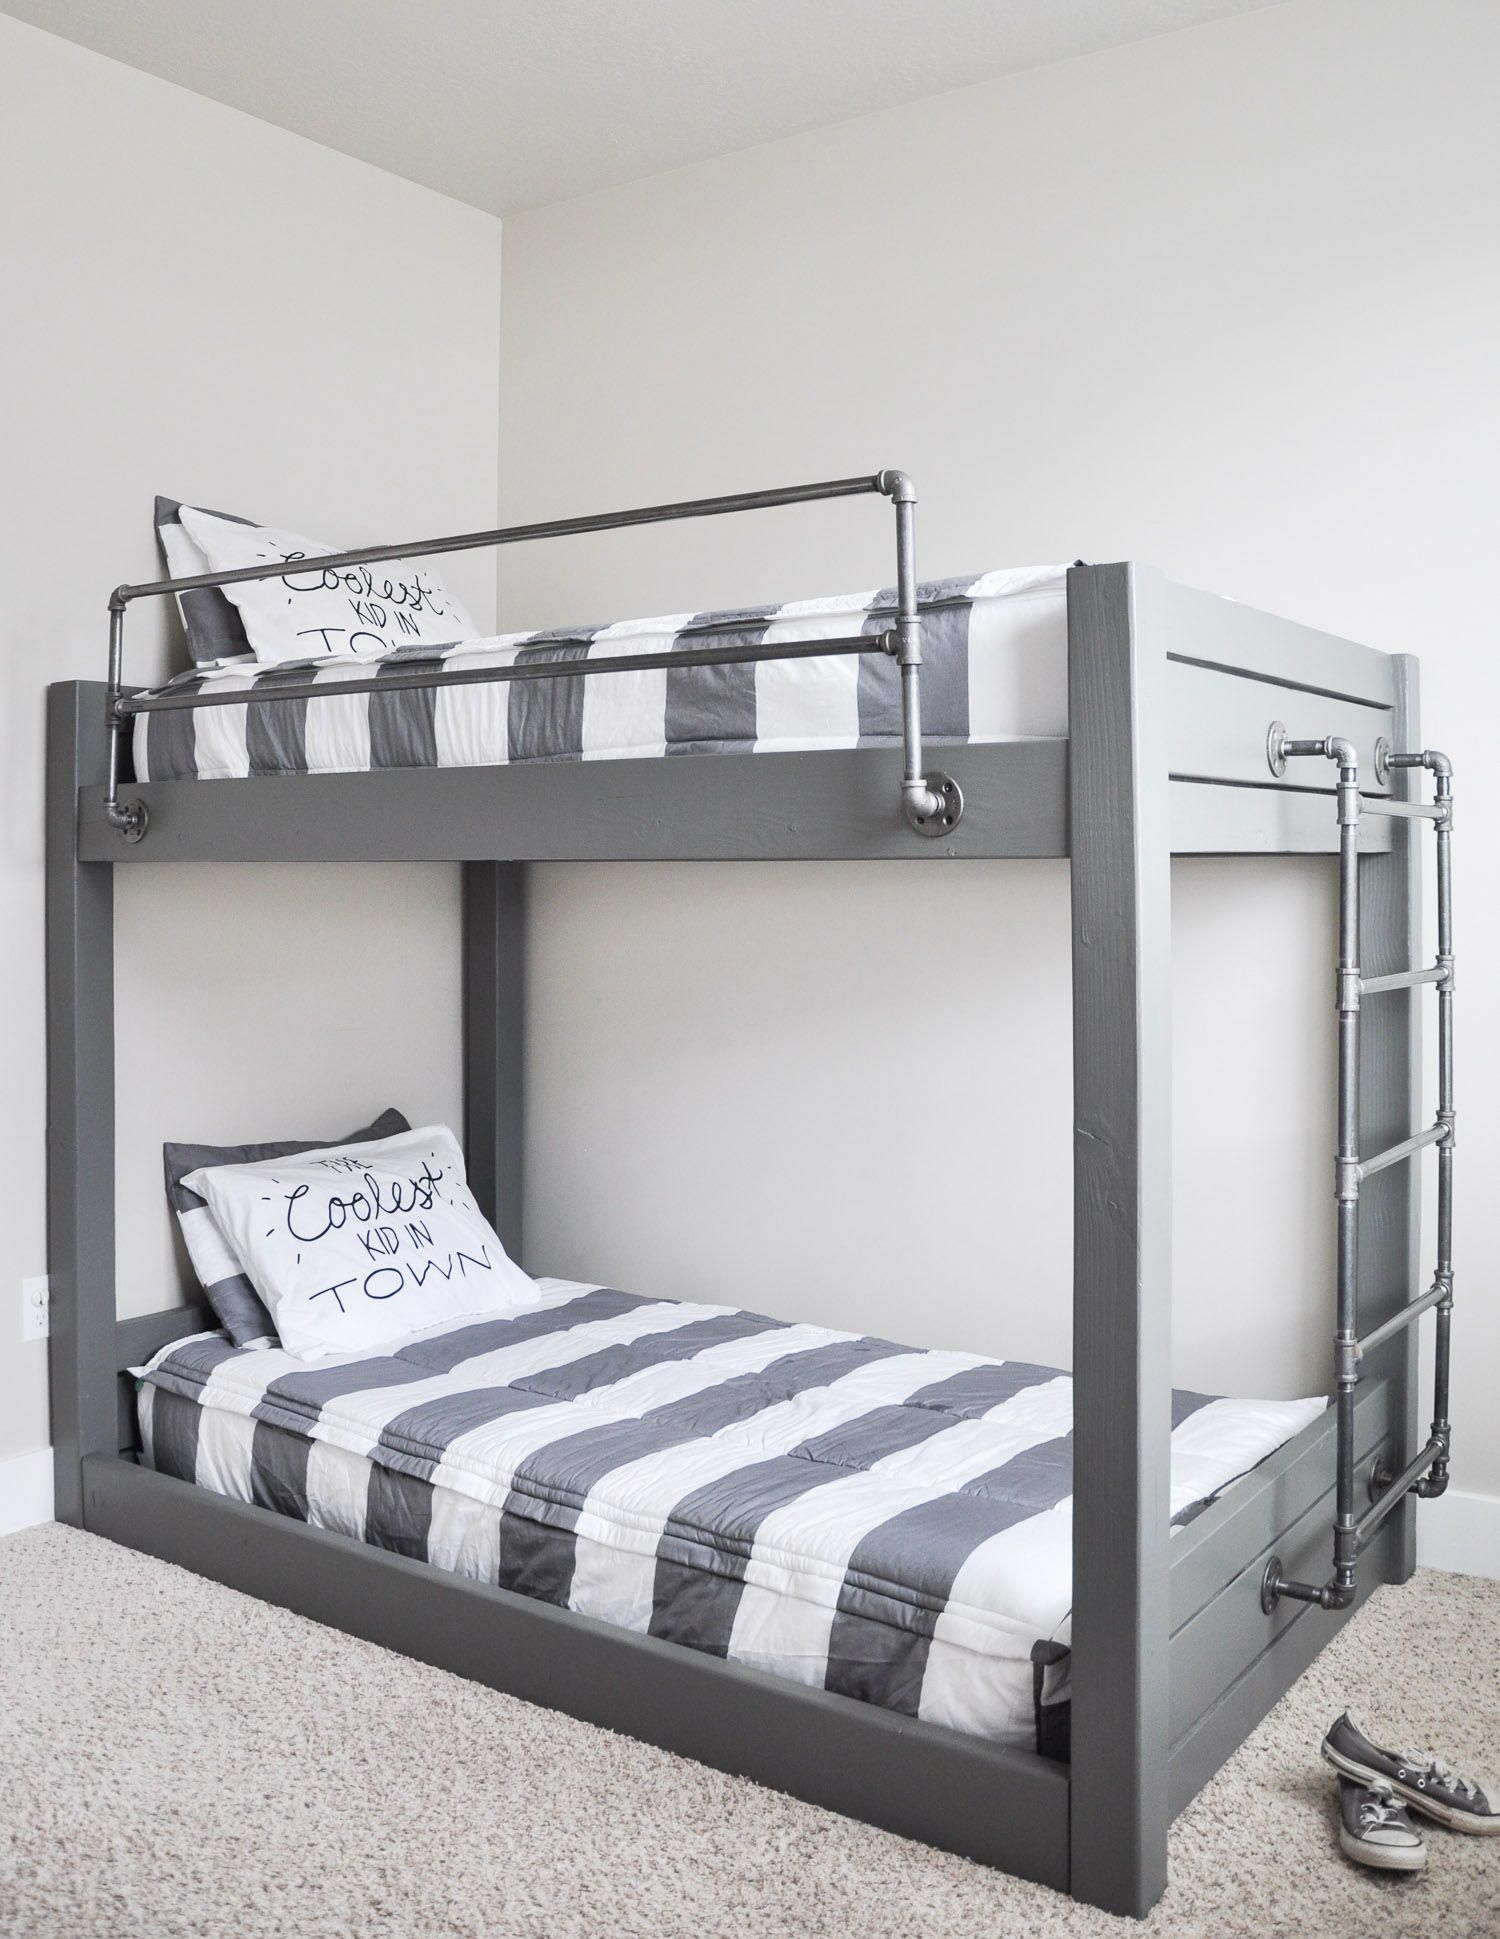 Small bedroom loft bed ideas  Double your sleeping space with these easy to build DIY Industrial